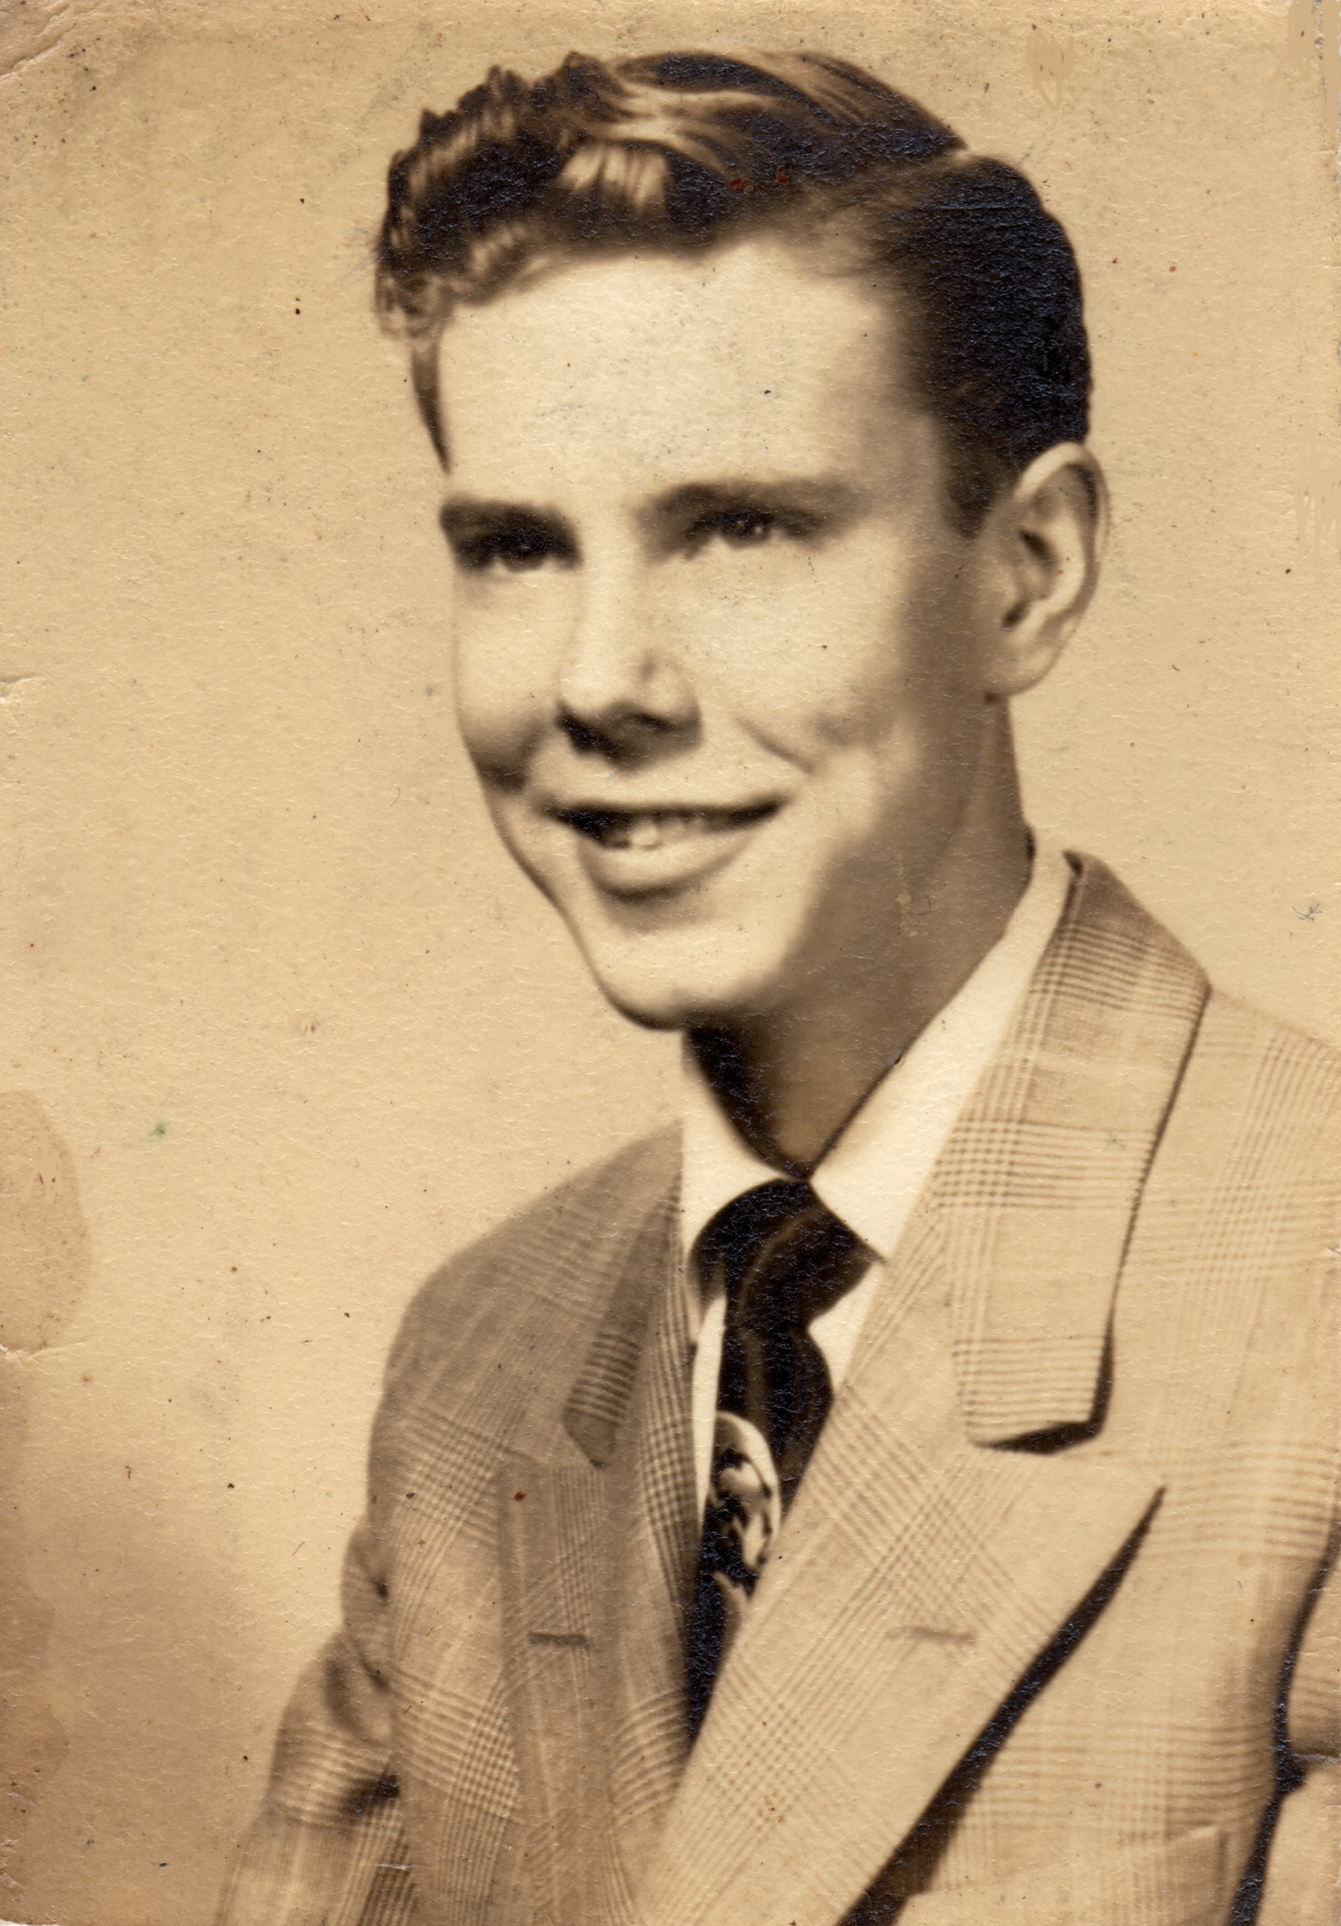 BobBro4: M. David Lawler around 17 (High School Graduation)